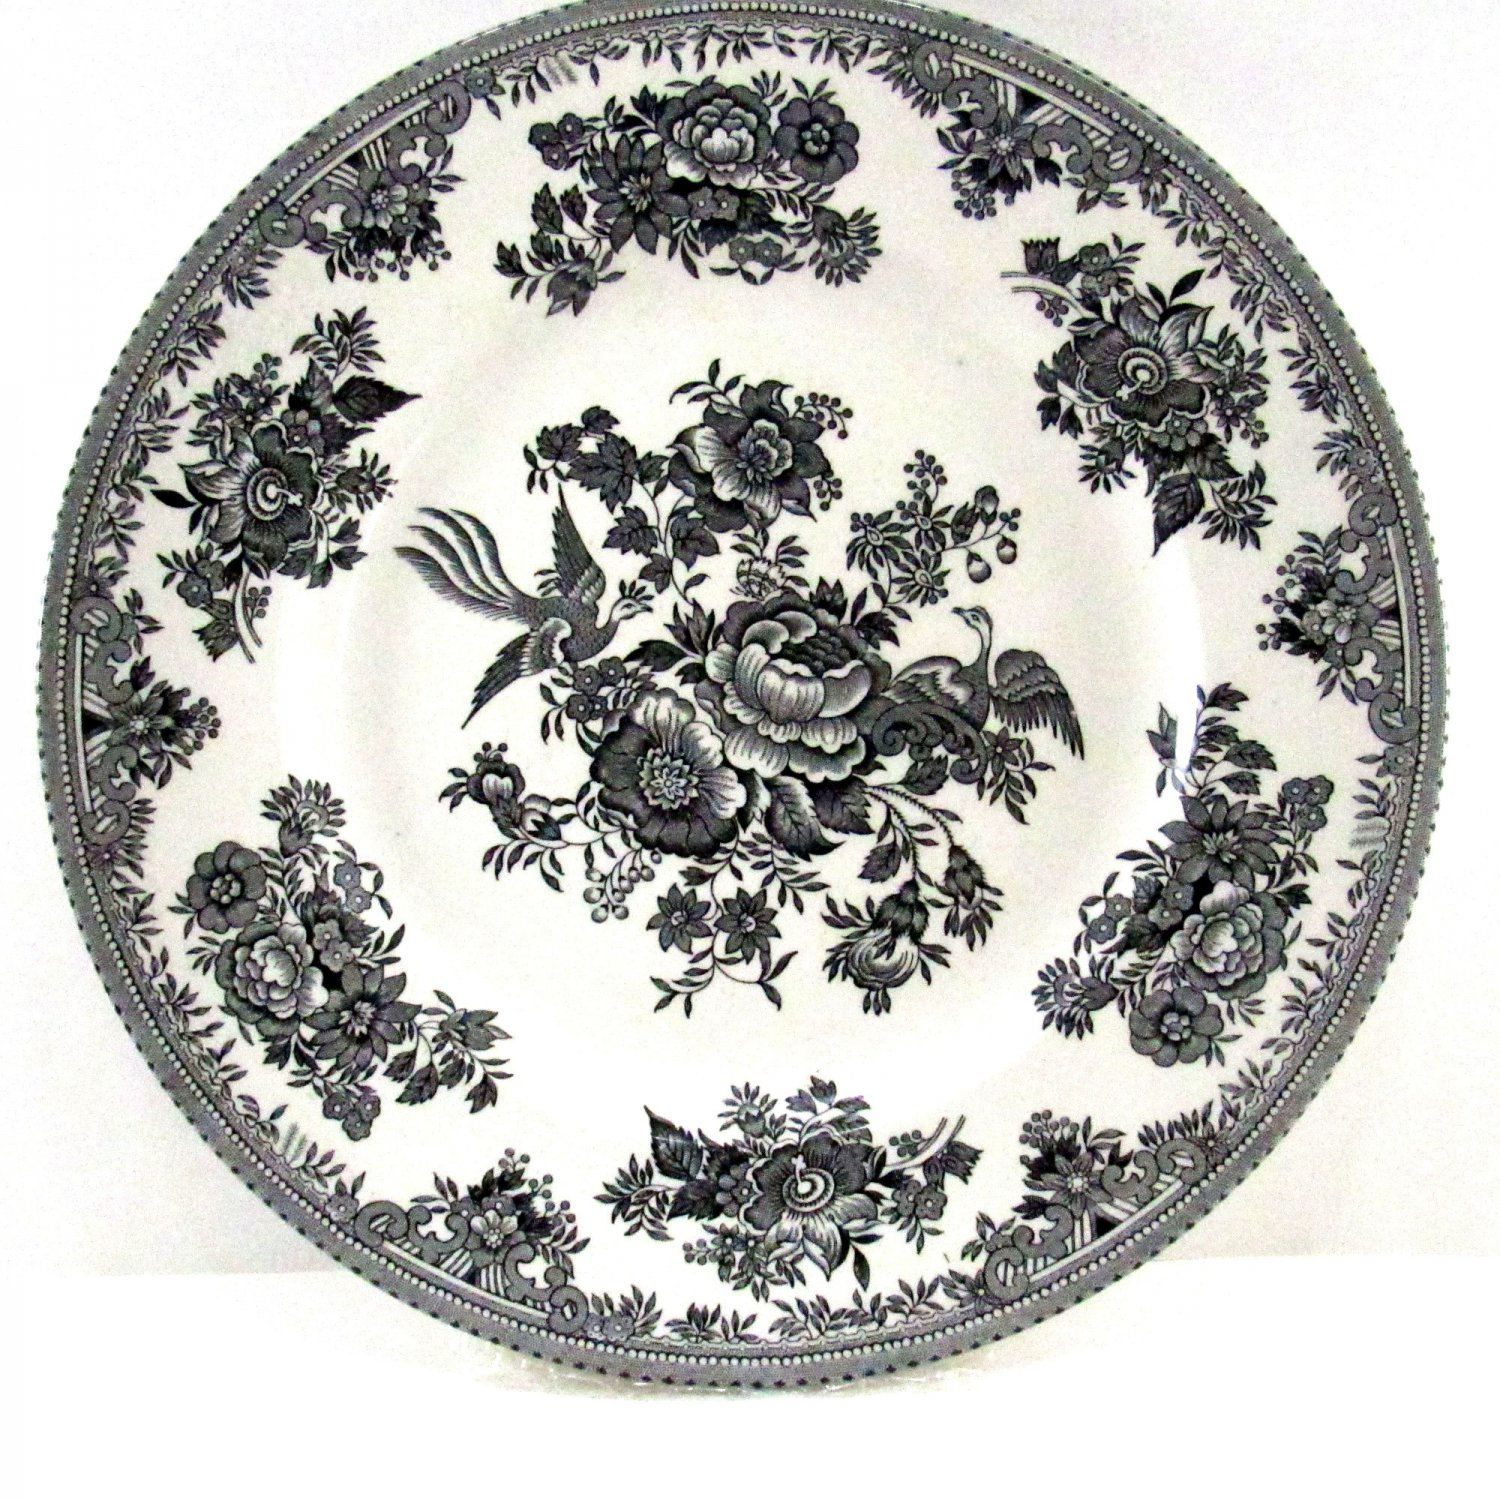 Black and White Asiatic Pheasants Plate 10 Inch Burgess & Leigh / Burleigh Pottery Made In England